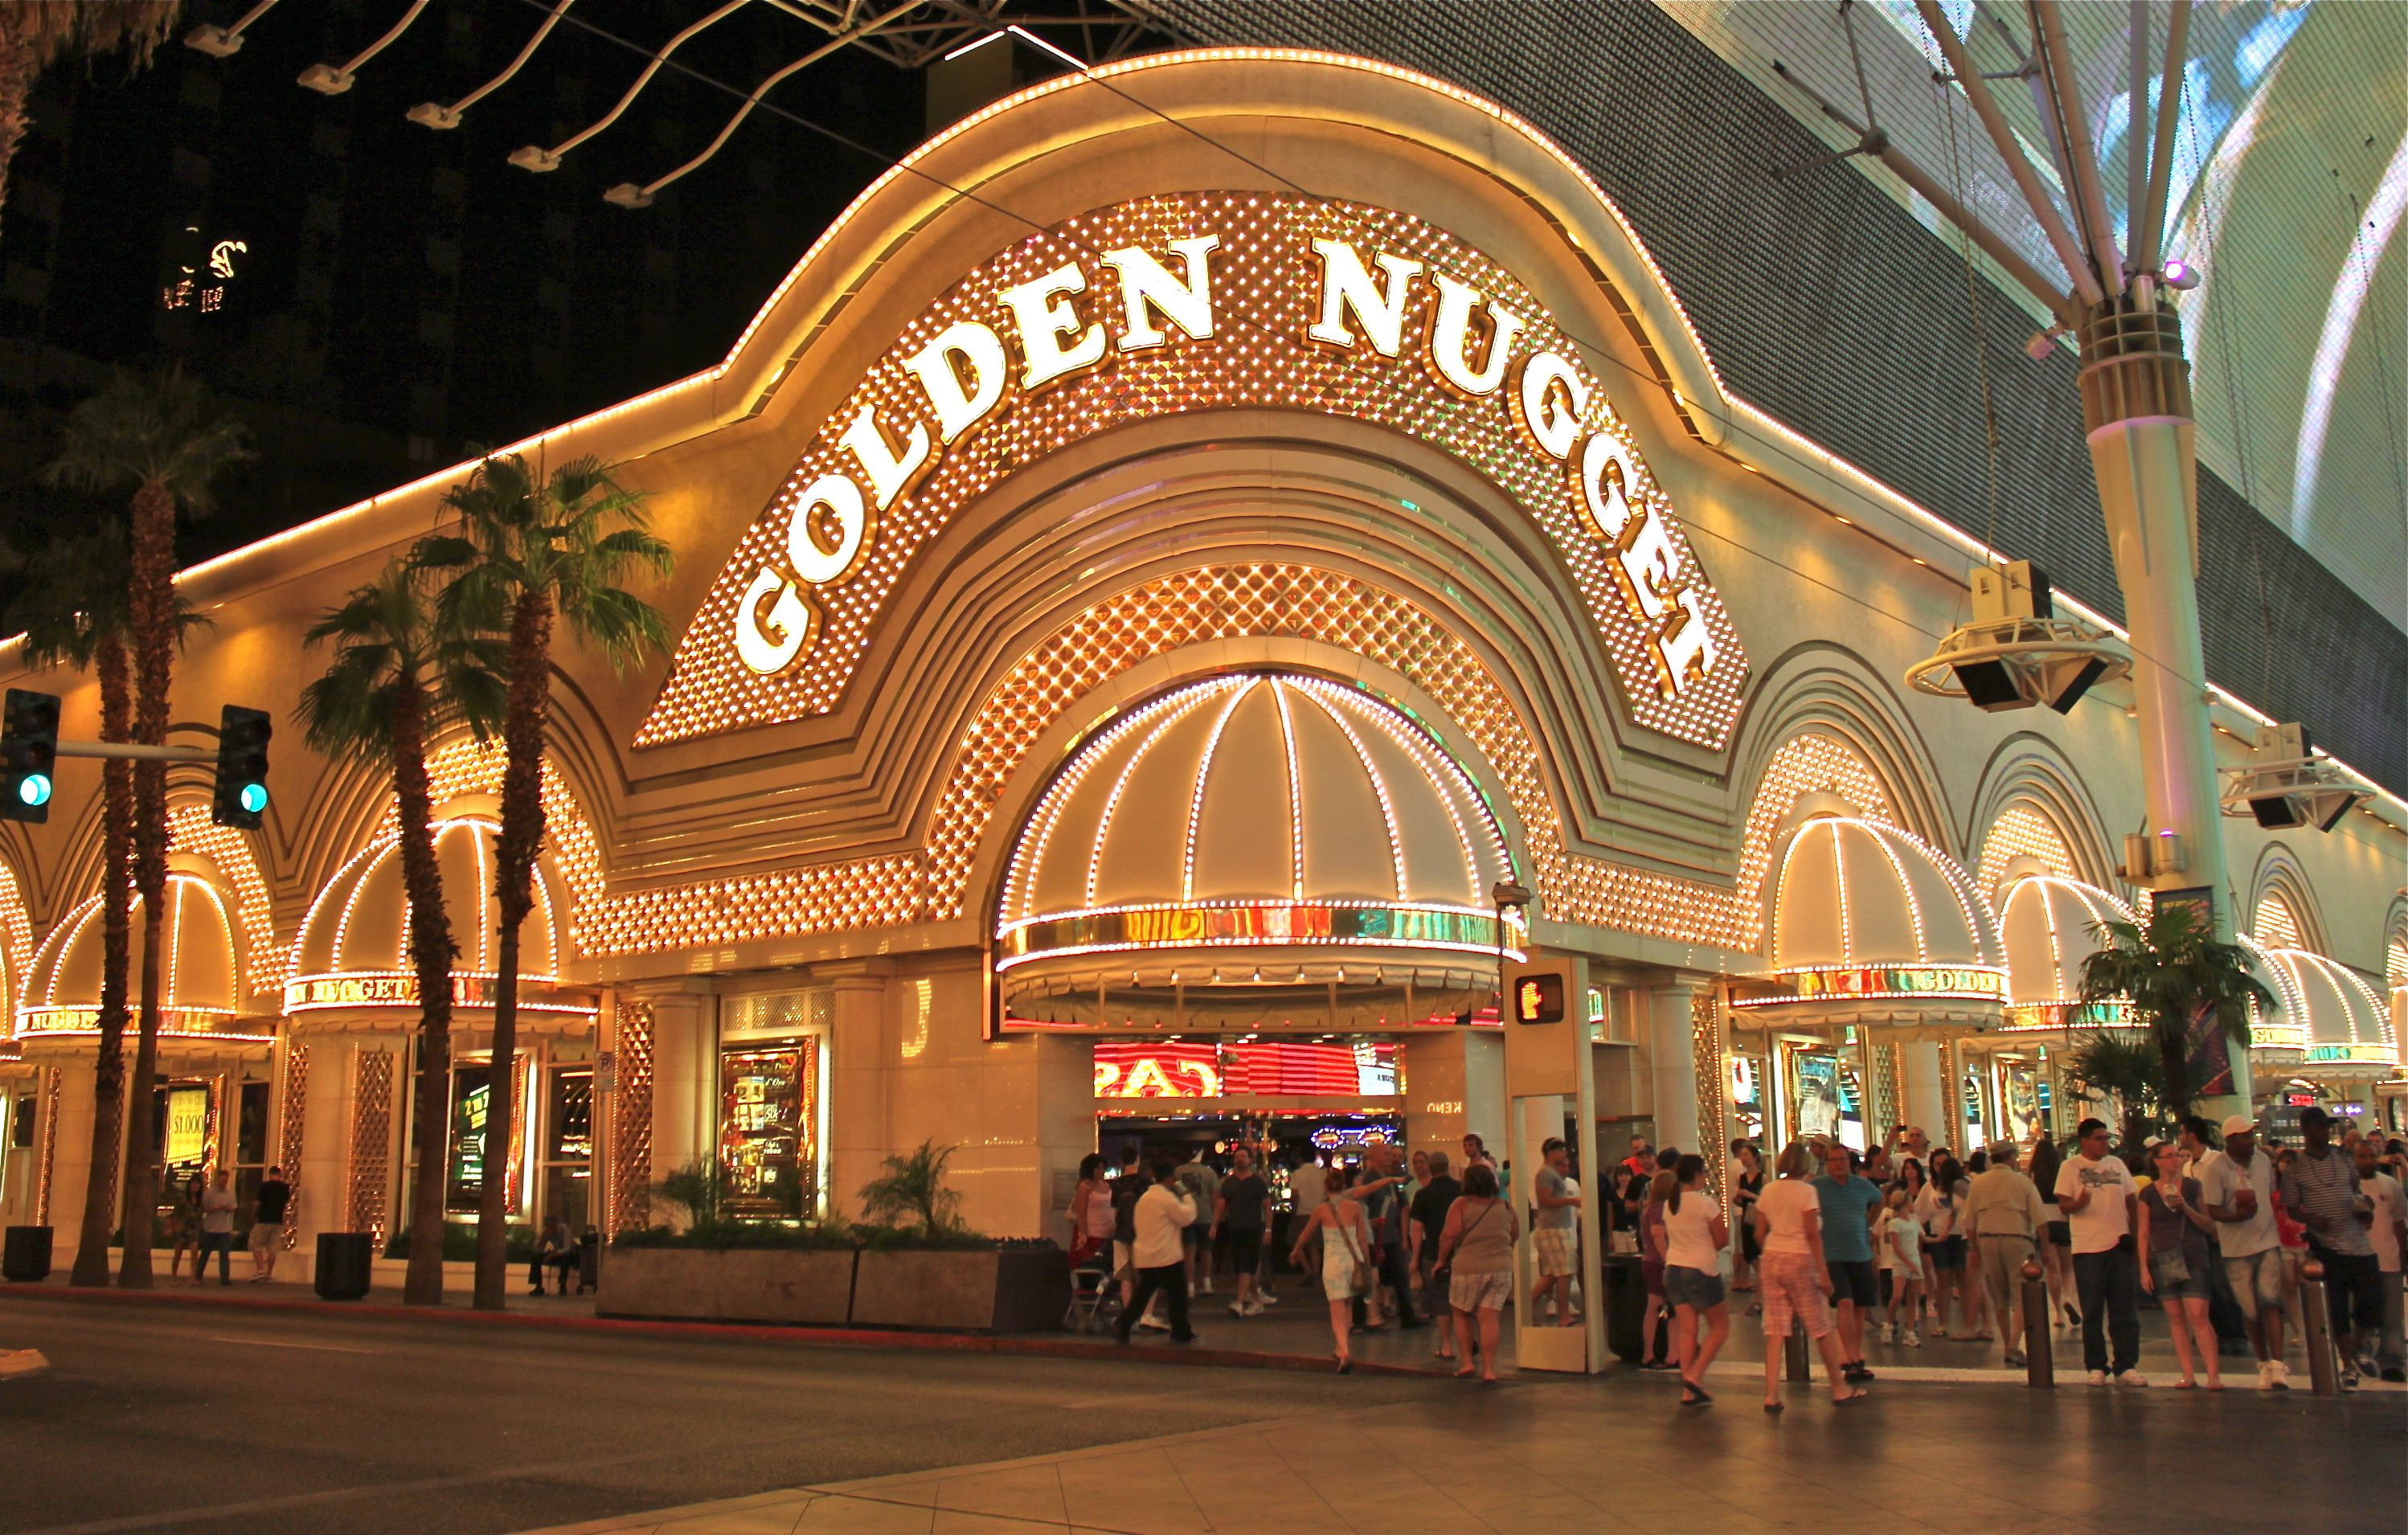 The Golden Nugget Hotel In Las Vegas A Setting In The Novel A